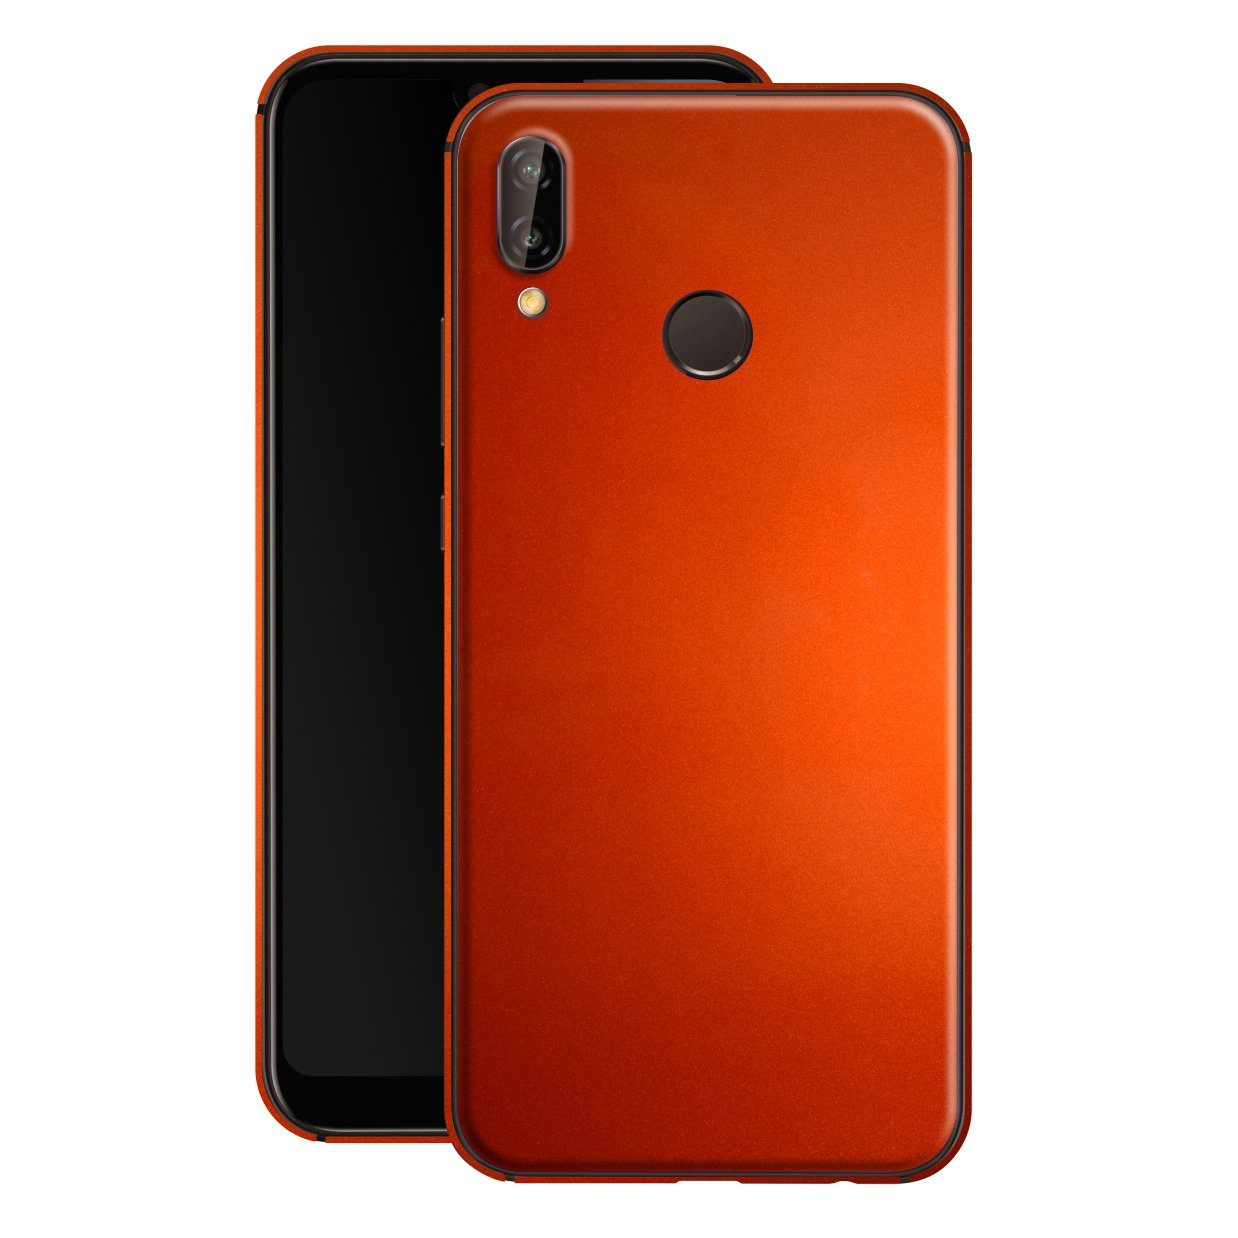 Huawei P20 LITE Fiery Orange Tuning Metallic Skin, Decal, Wrap, Protector, Cover by EasySkinz | EasySkinz.com